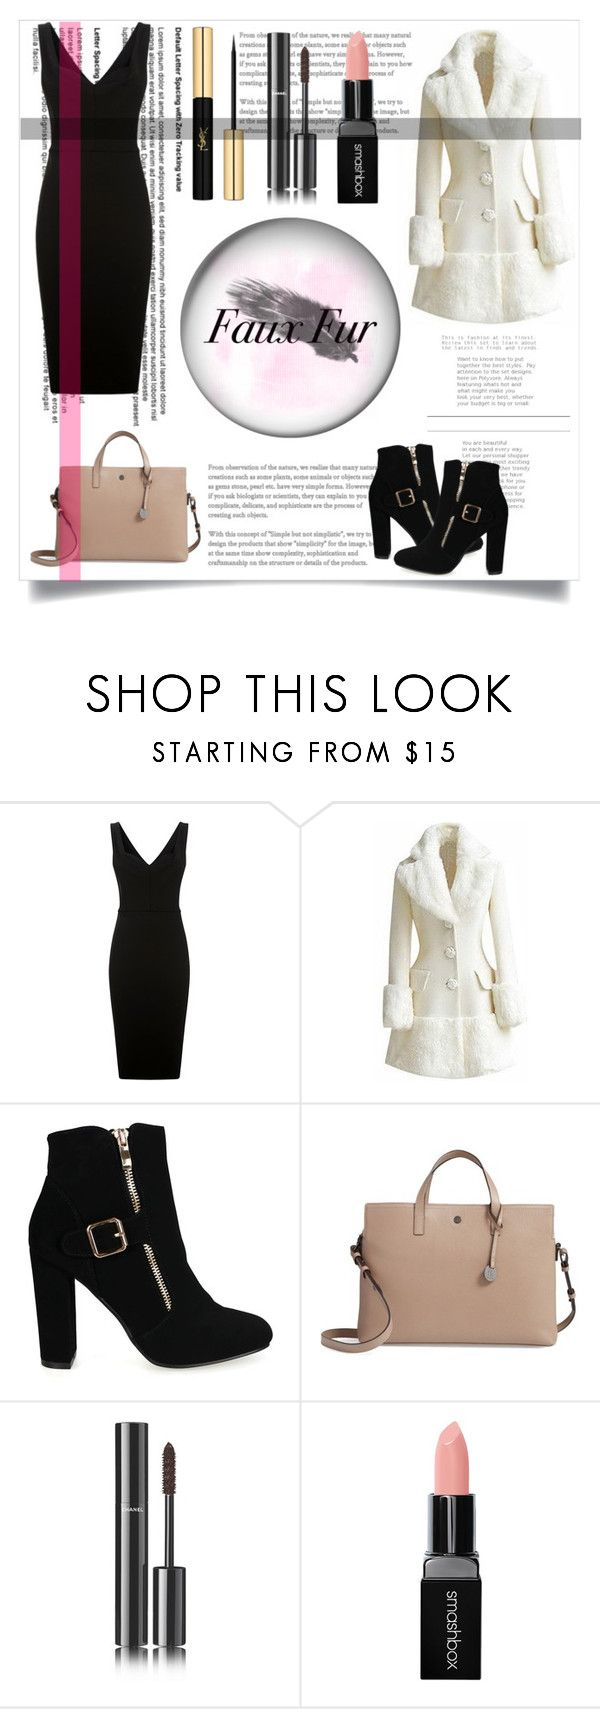 """Fur kind."" by sara-gill-at-gurdevsinghgill95 on Polyvore featuring Victoria Beckham, Lodis, Chanel, Smashbox and Yves Saint Laurent"